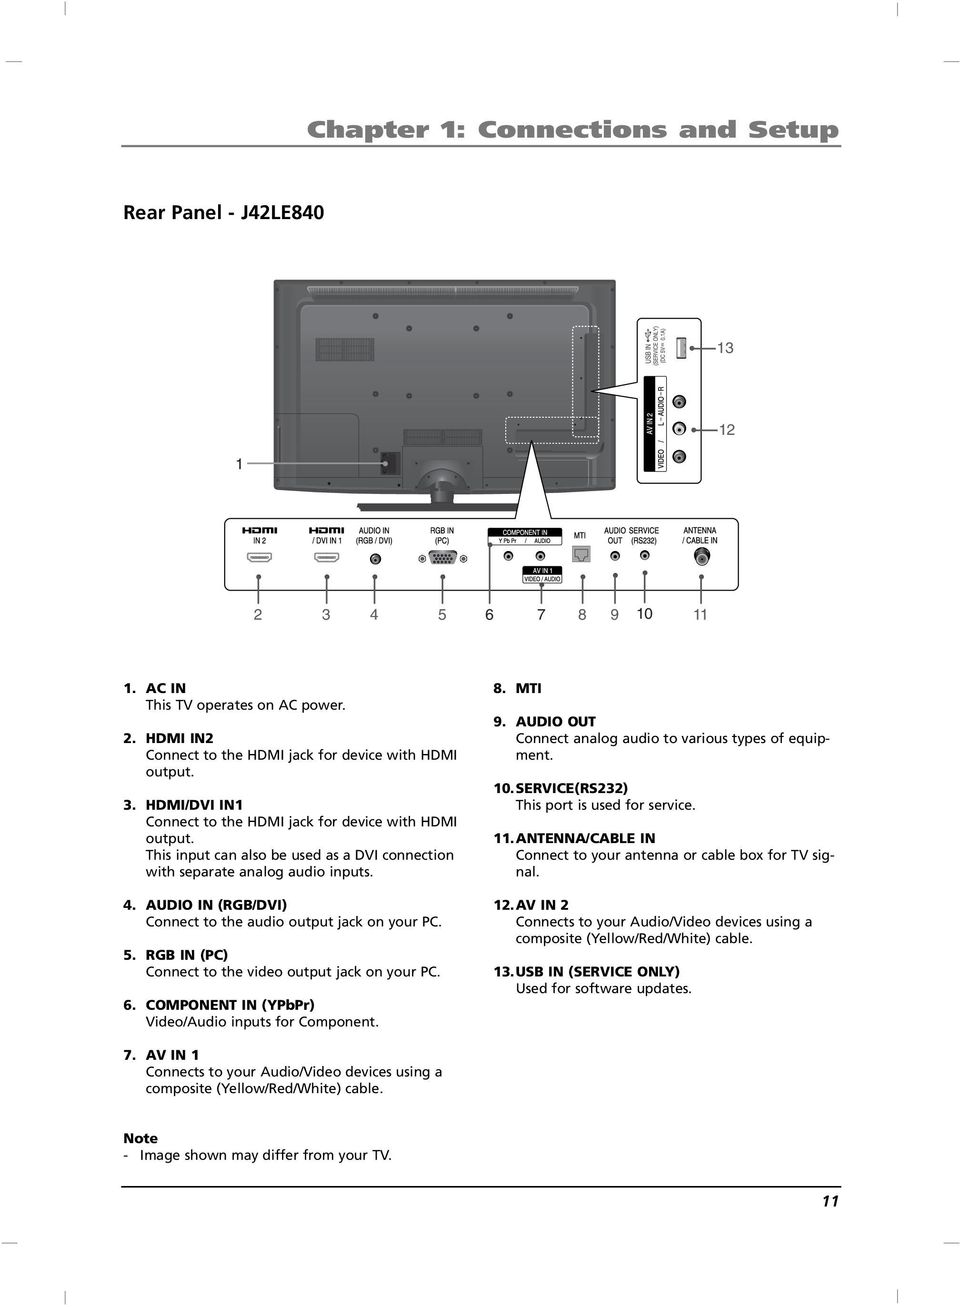 RB IN (PC) Connect to the video output jack on your PC. 6. COMPONENT IN (YPbPr) Video/Audio inputs for Component. 8. MTI 9. AUDIO OUT Connect analog audio to various types of equipment. 10.